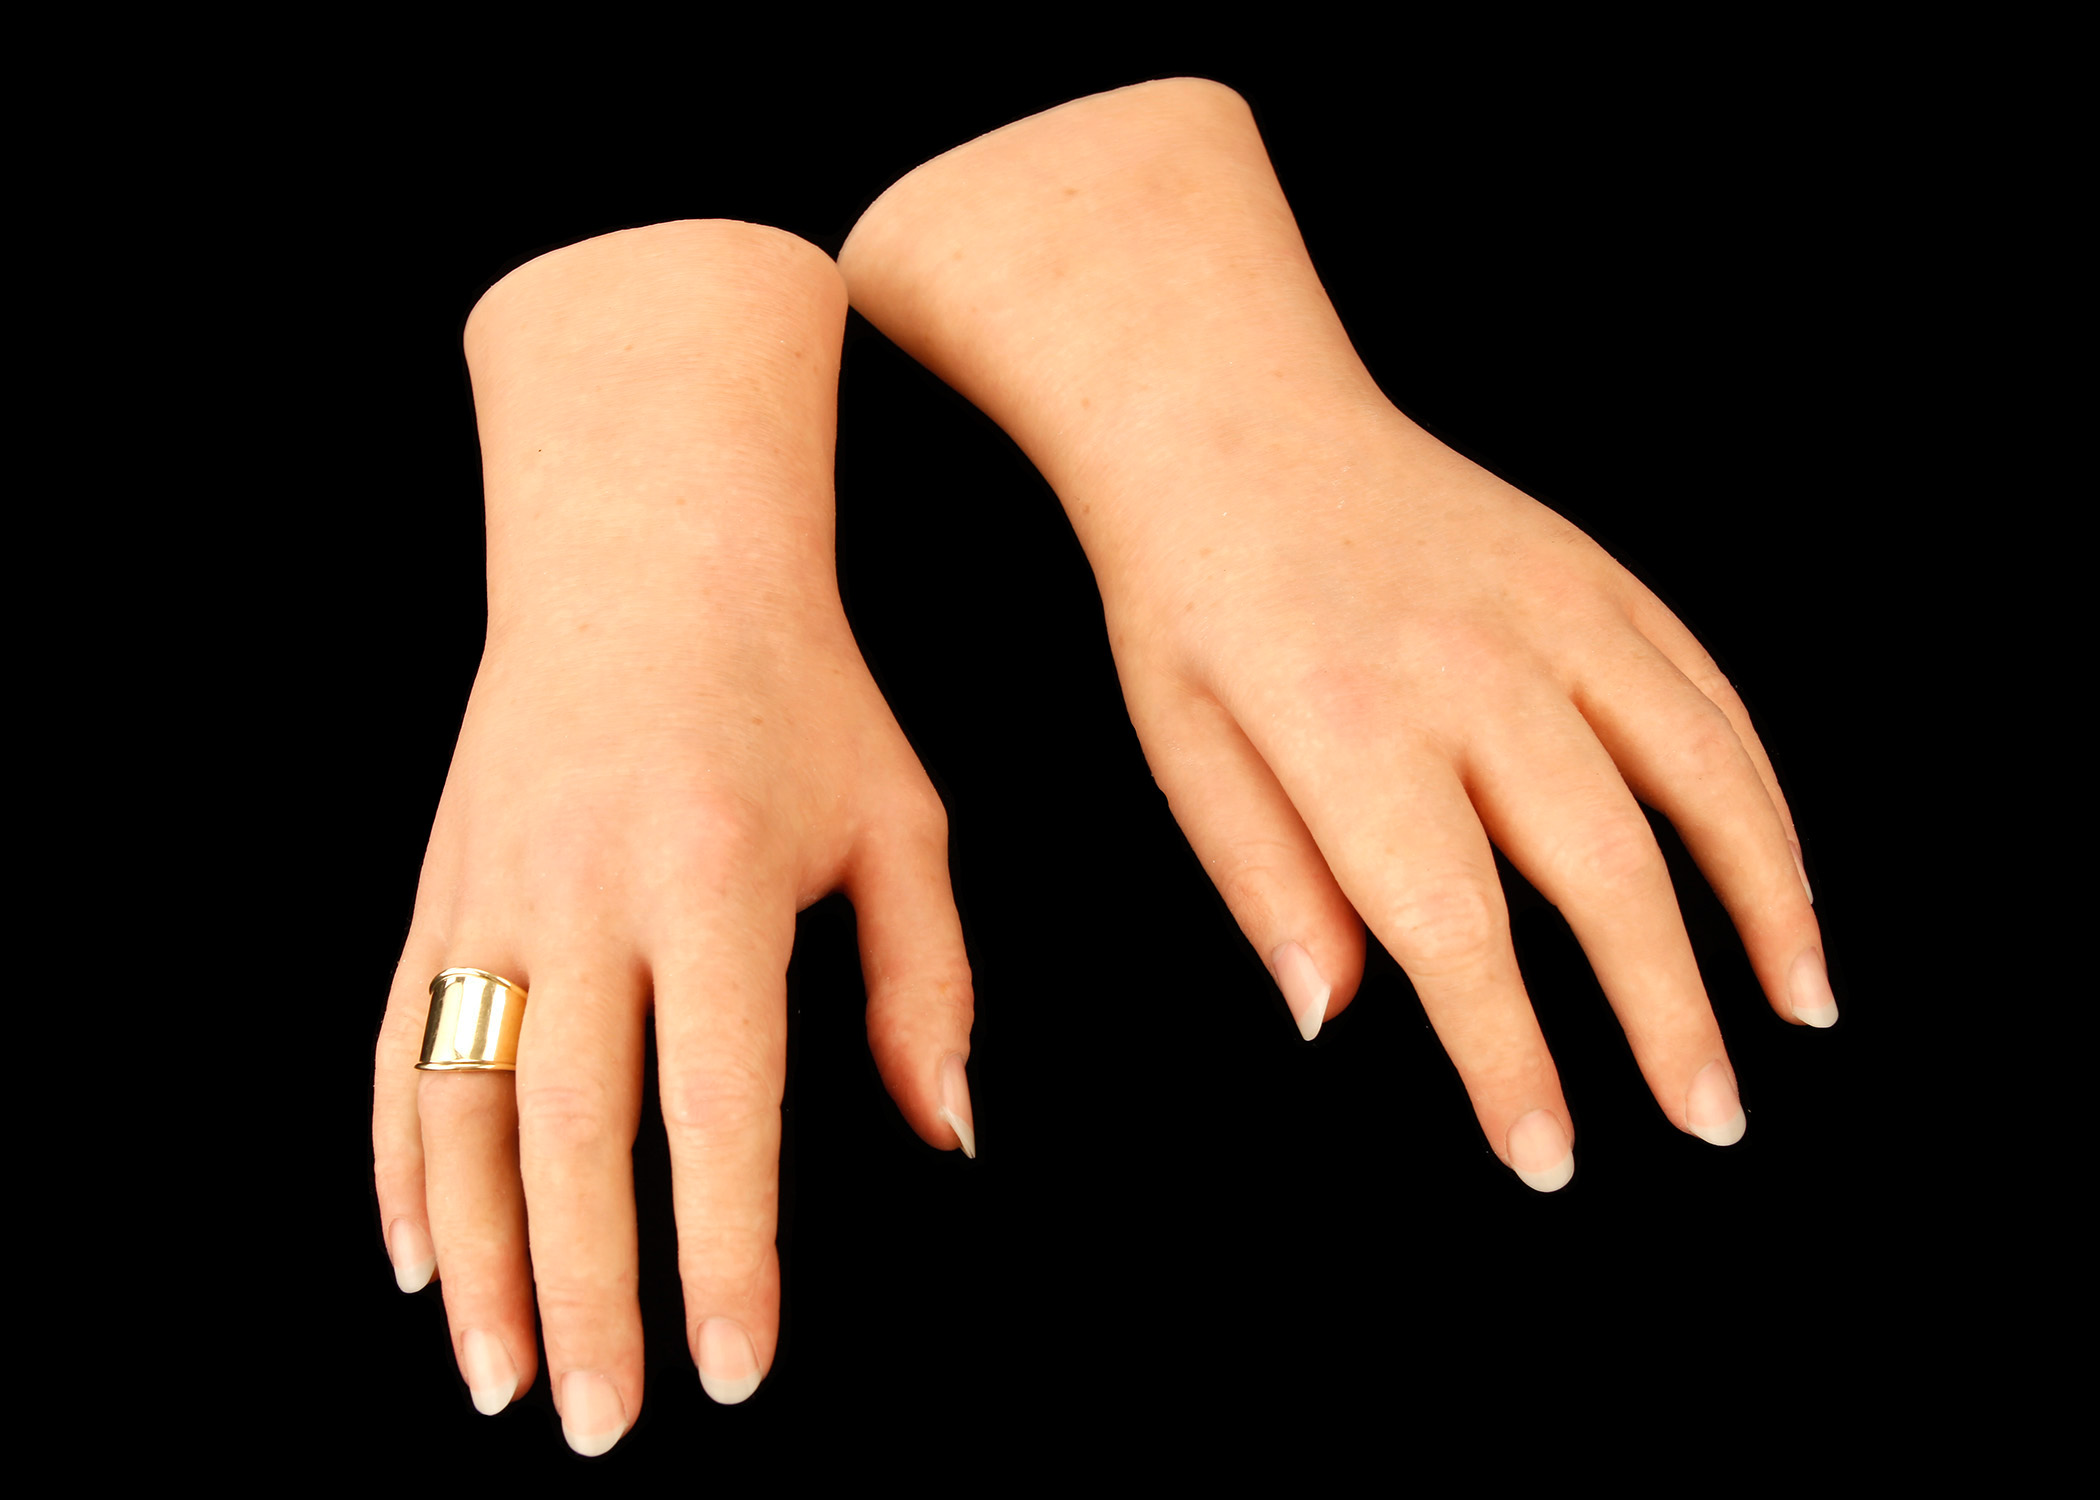 Top side also called dorsal side of the left and right cosmetic hands